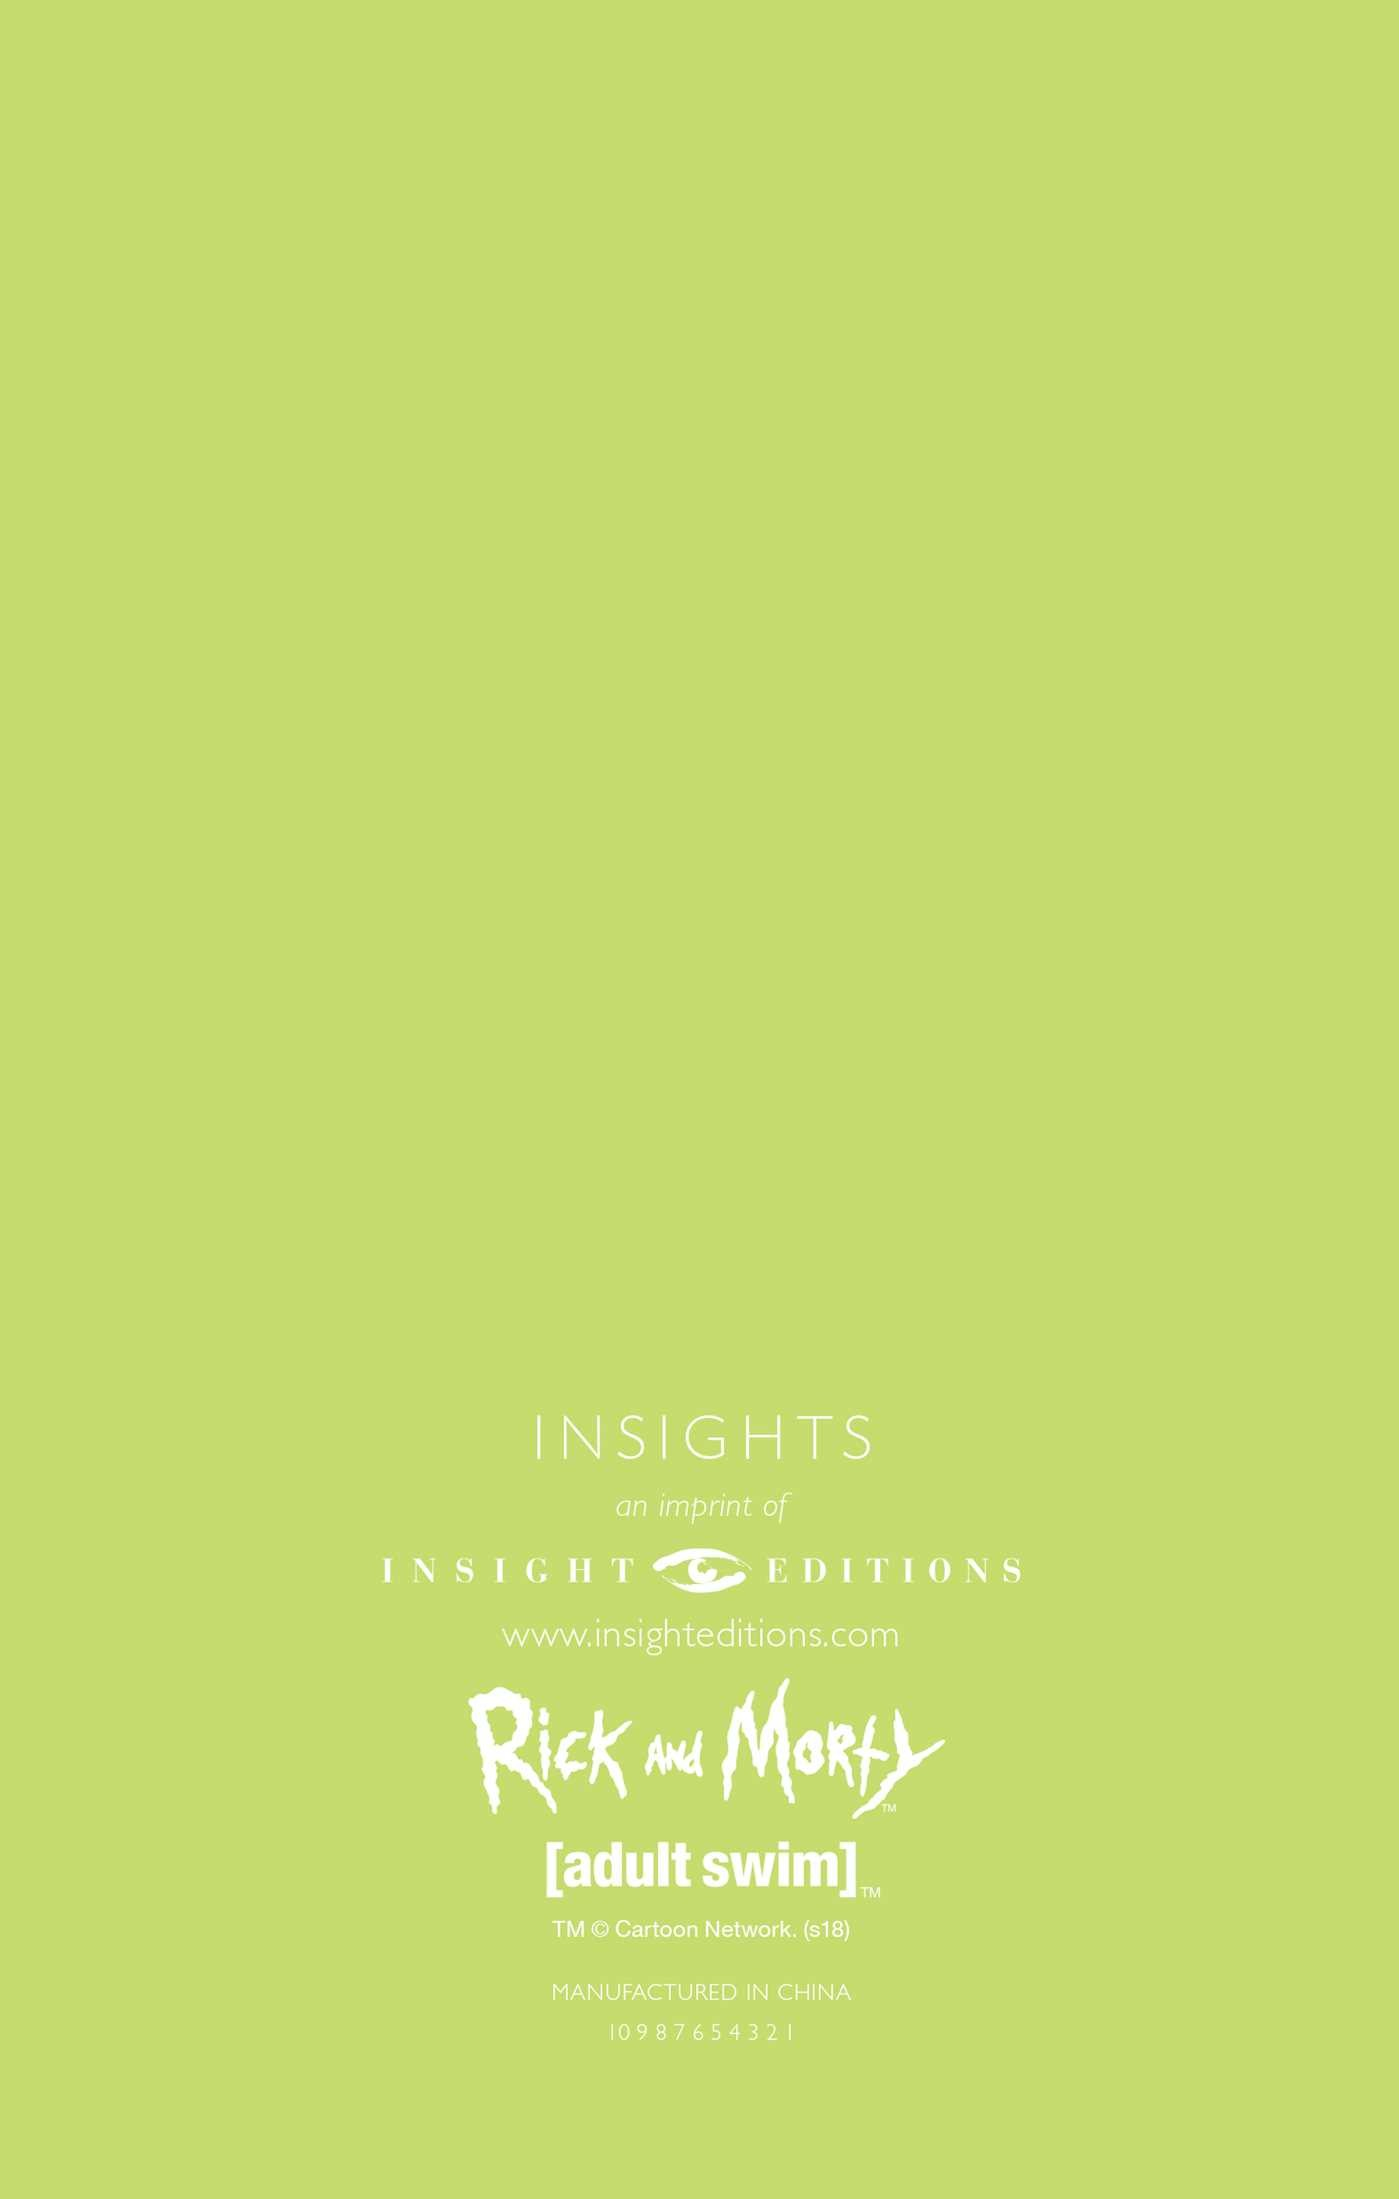 Rick and morty pickle rick hardcover ruled journal with pen 9781683835356.in04